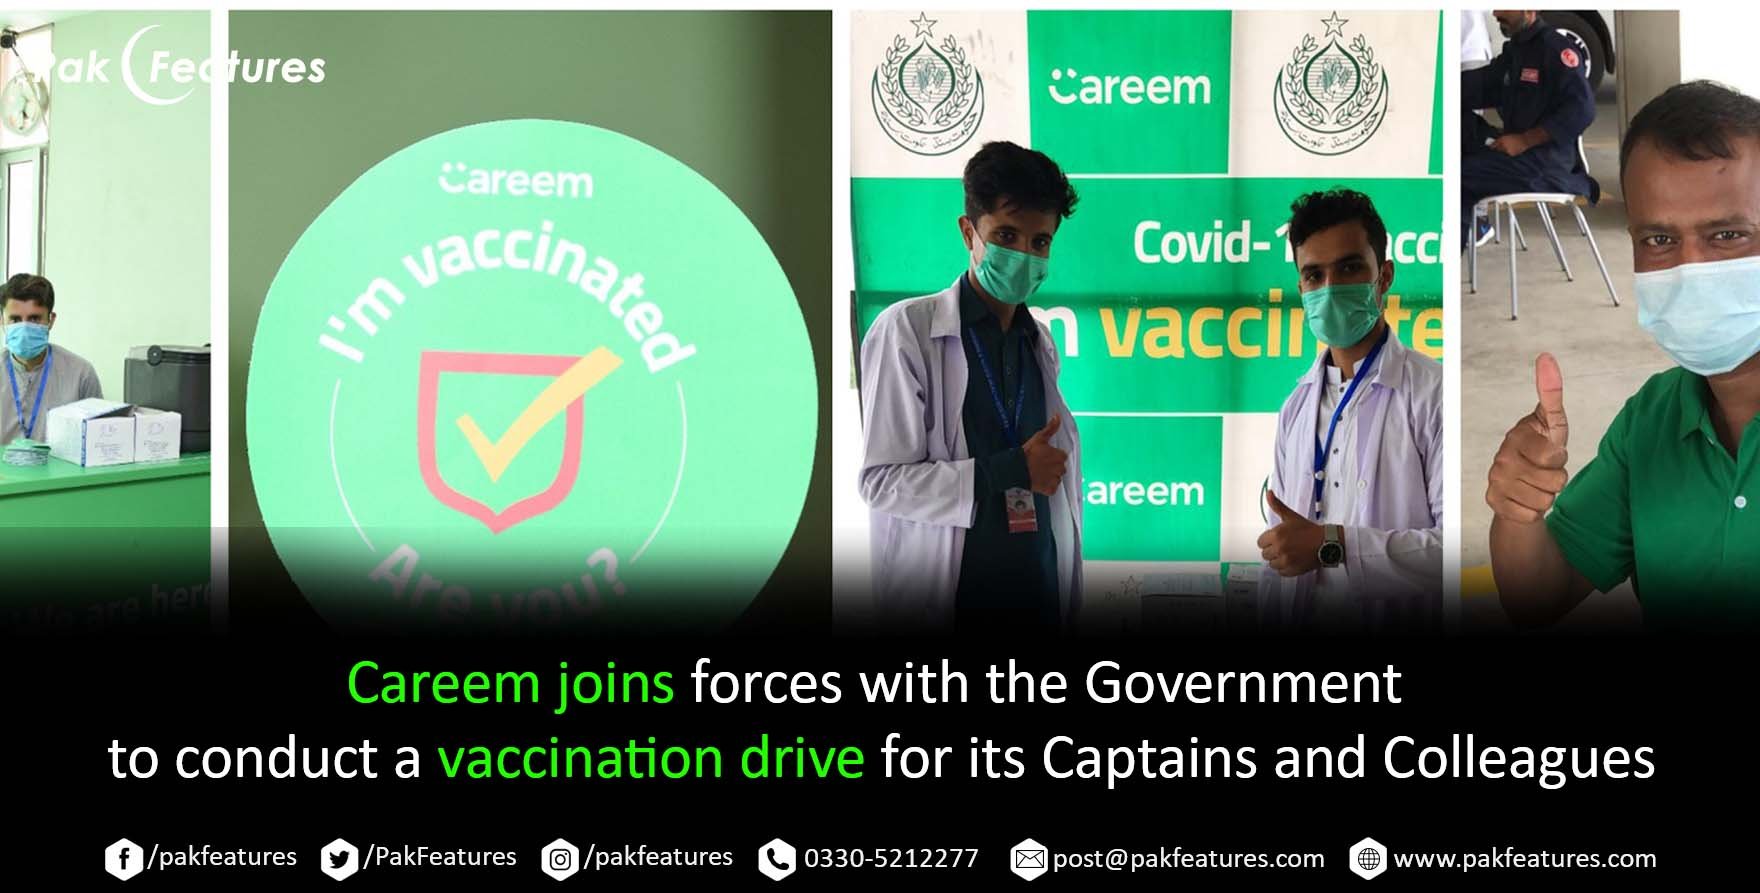 Careem joins forces with the Government to conduct a vaccination drive for its Captains and Colleagues